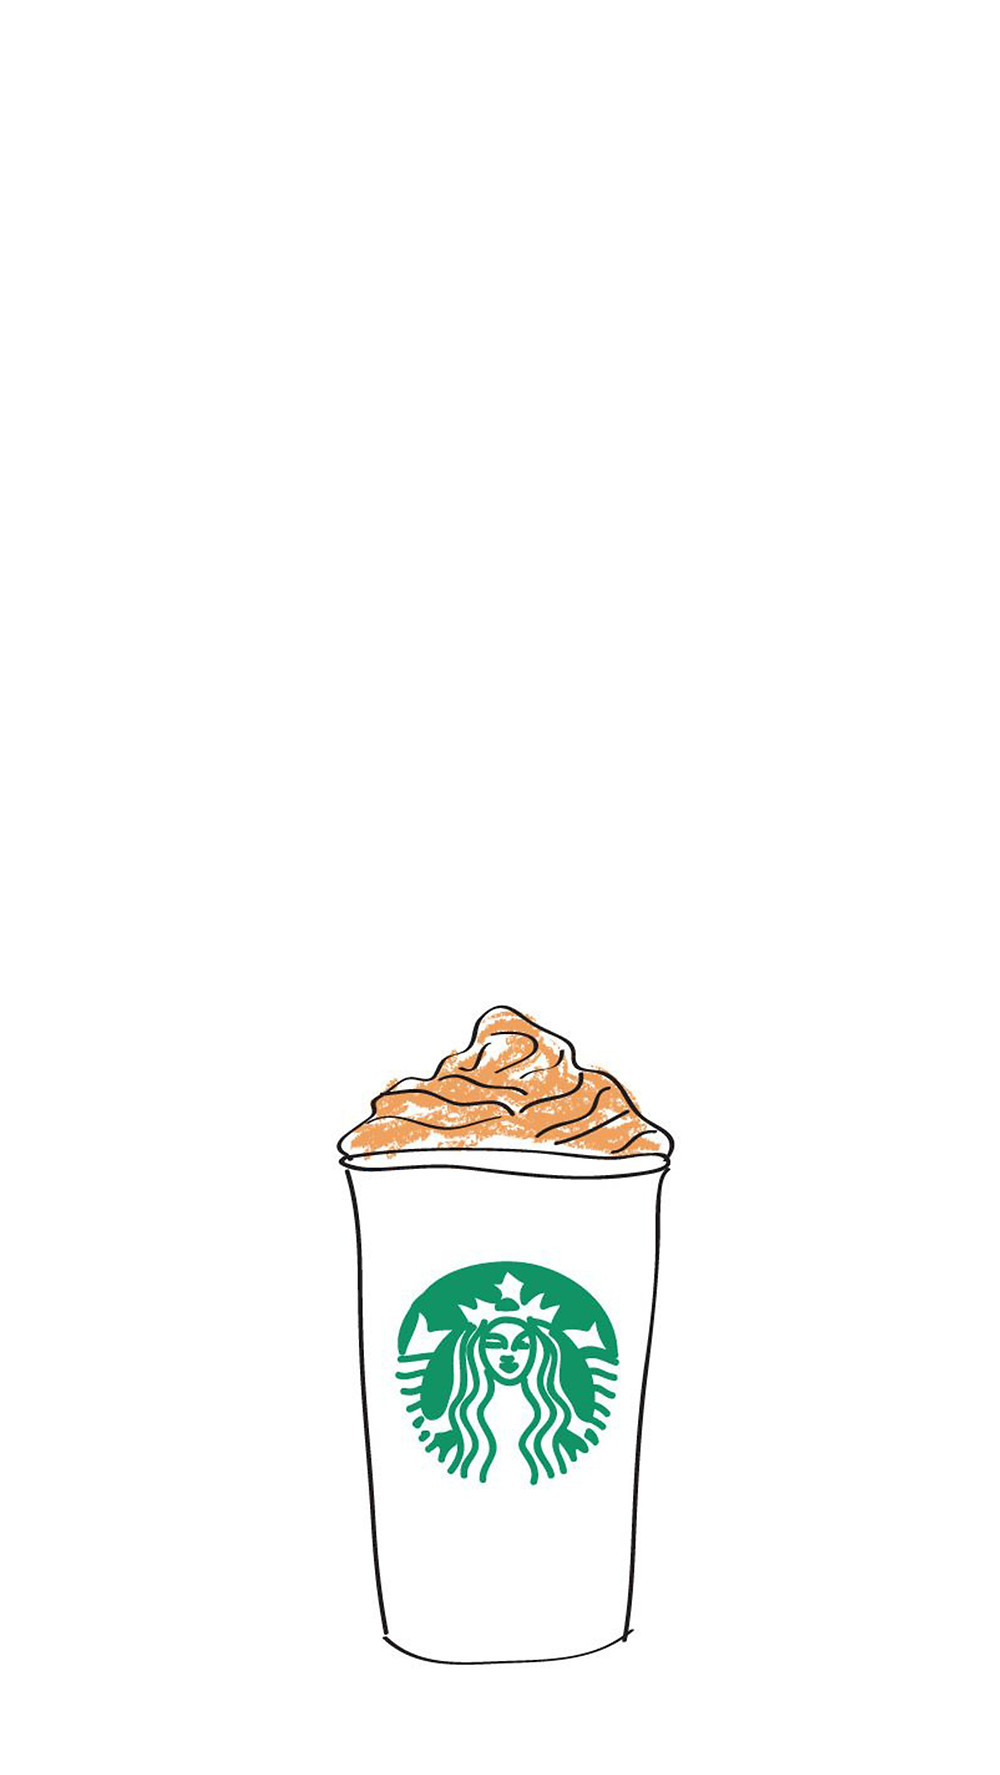 2017 Fall Autumn Phone Backgrounds - Fall Phone Wallpapers - but first coffee background - psl background - pumpkin spice latte background